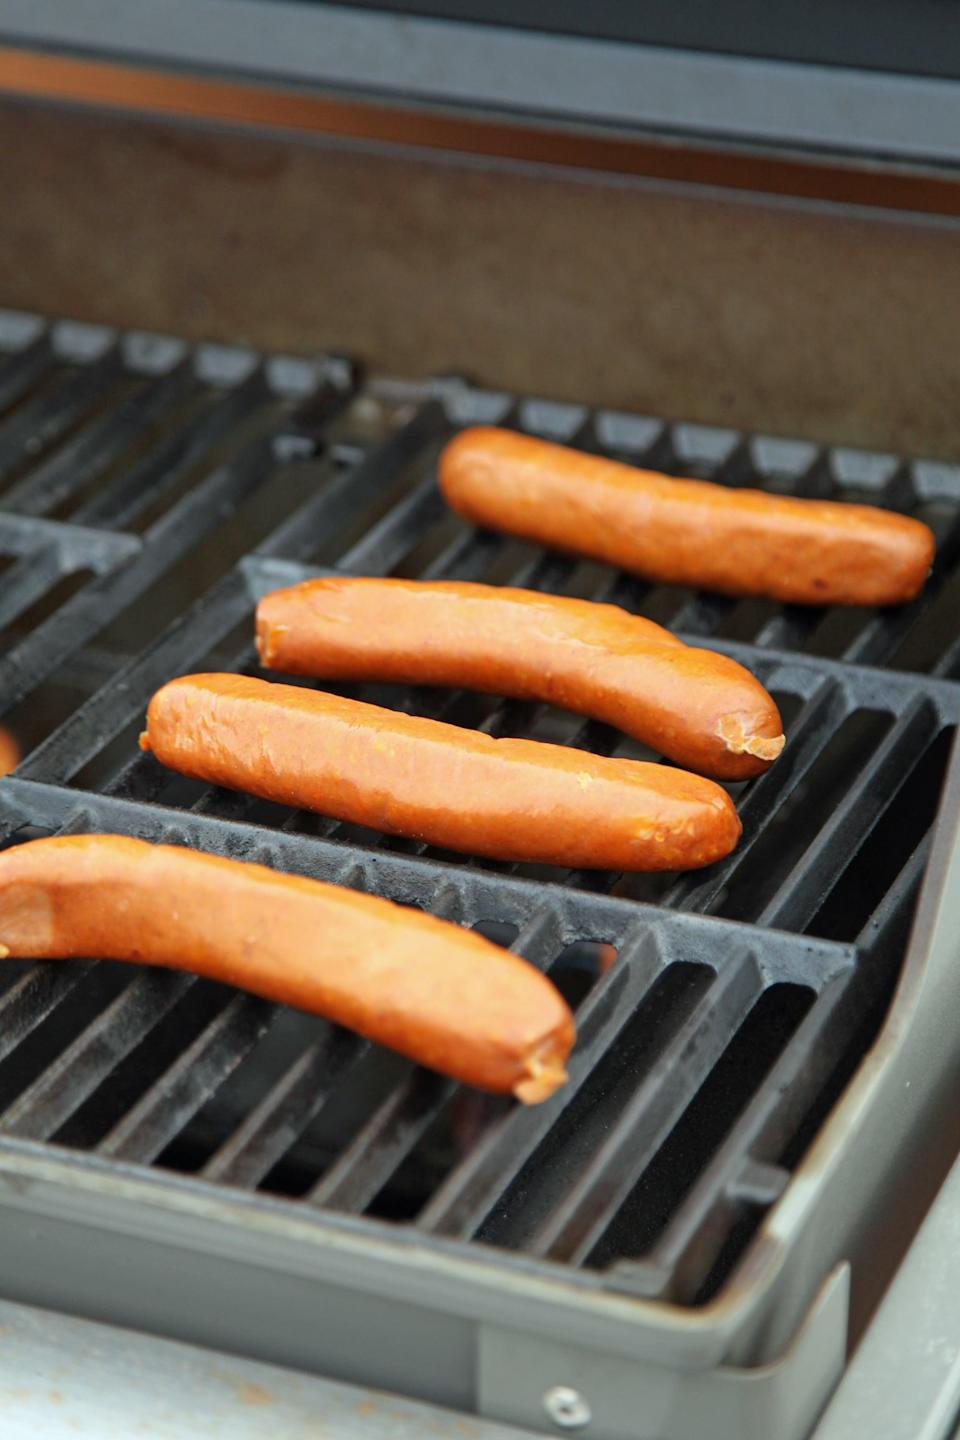 "<p>Grilling hot dogs is as easy as it gets, but it's always important to get a tutorial before you fire up the grill. This is hands down the best way to do it. </p> <p><strong>Get the recipe:</strong> <a href=""https://www.popsugar.com/food/How-Grill-Hot-Dogs-37615524"" class=""link rapid-noclick-resp"" rel=""nofollow noopener"" target=""_blank"" data-ylk=""slk:grilled hot dogs"">grilled hot dogs</a></p>"